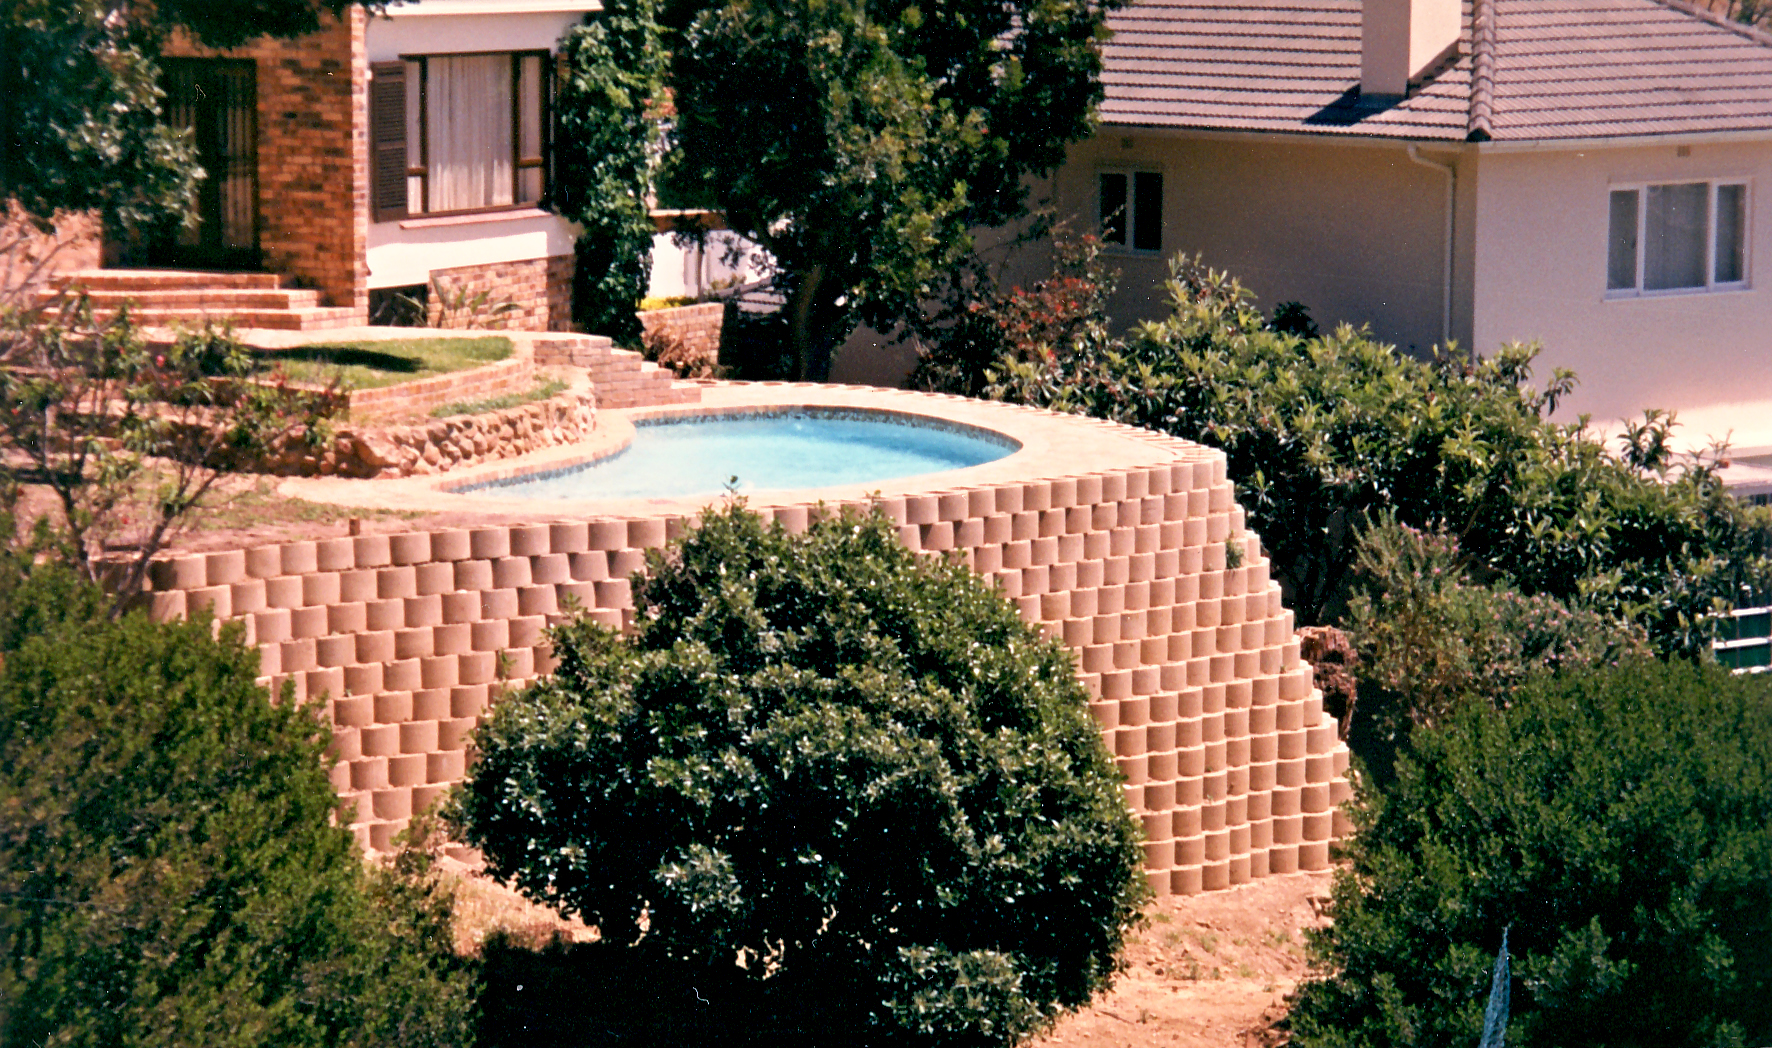 Pool in Cape Town, founded at ground level, in small sloping garden. The wall foundations, situated on a steep slope, were reinforced, spanning between 1m x 1m x 2m deep mass foundations. these in turn were tied back to concrete anchors (called a dead man anchor) placed underneath the RC pool.